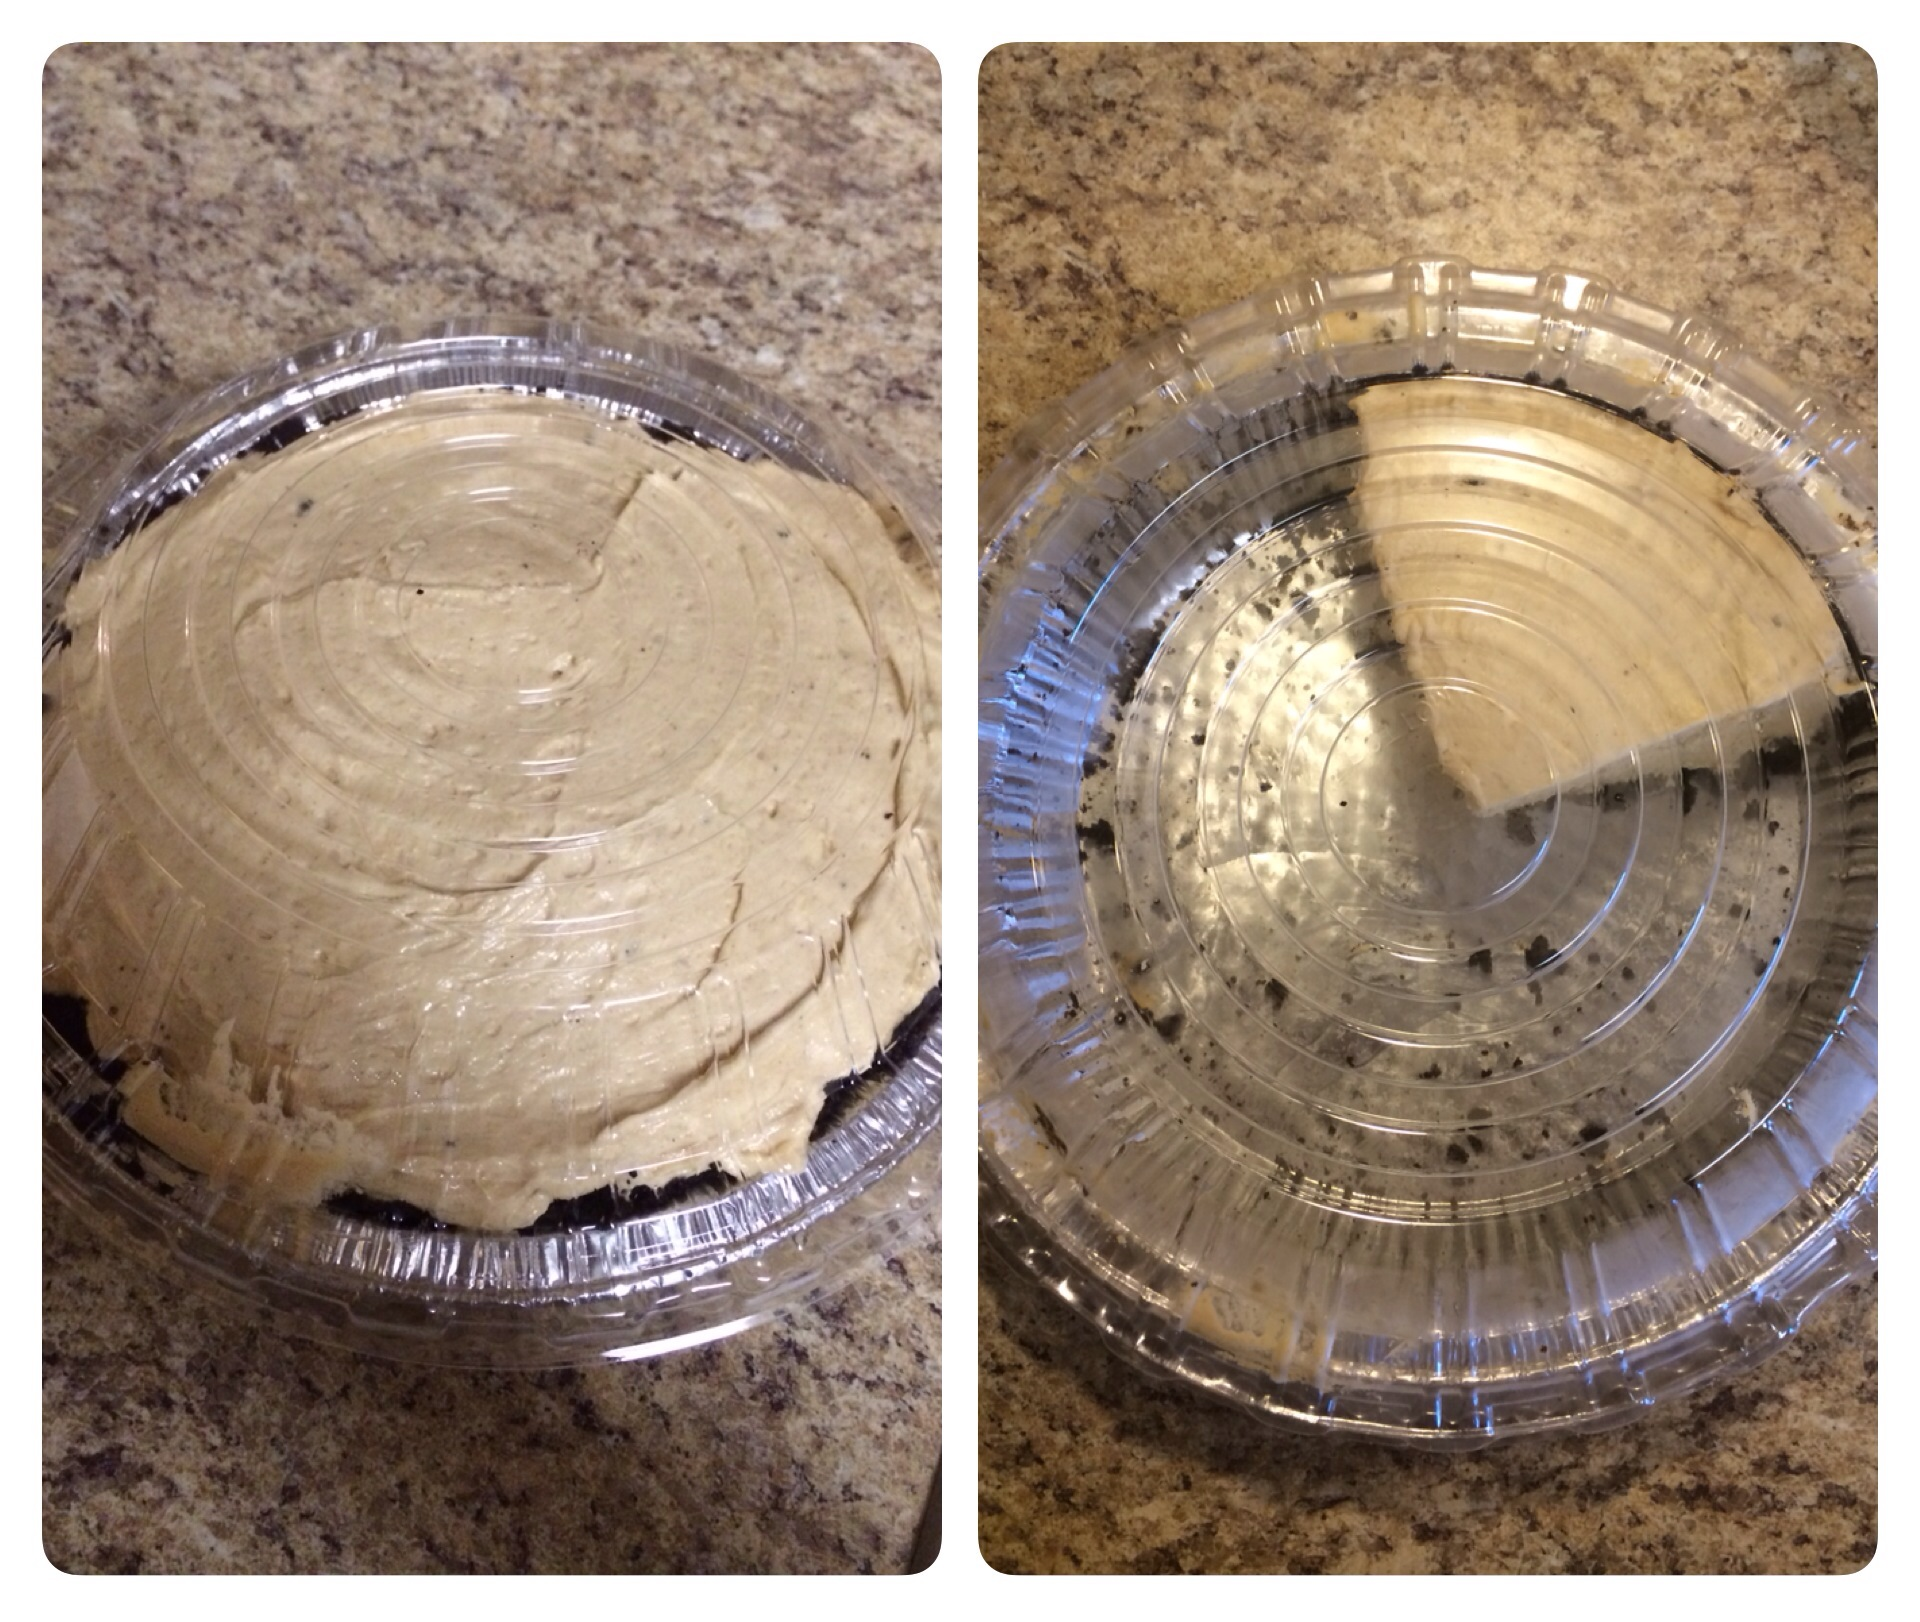 It has been a whole week and I am pleased to report that I still have some pie left!